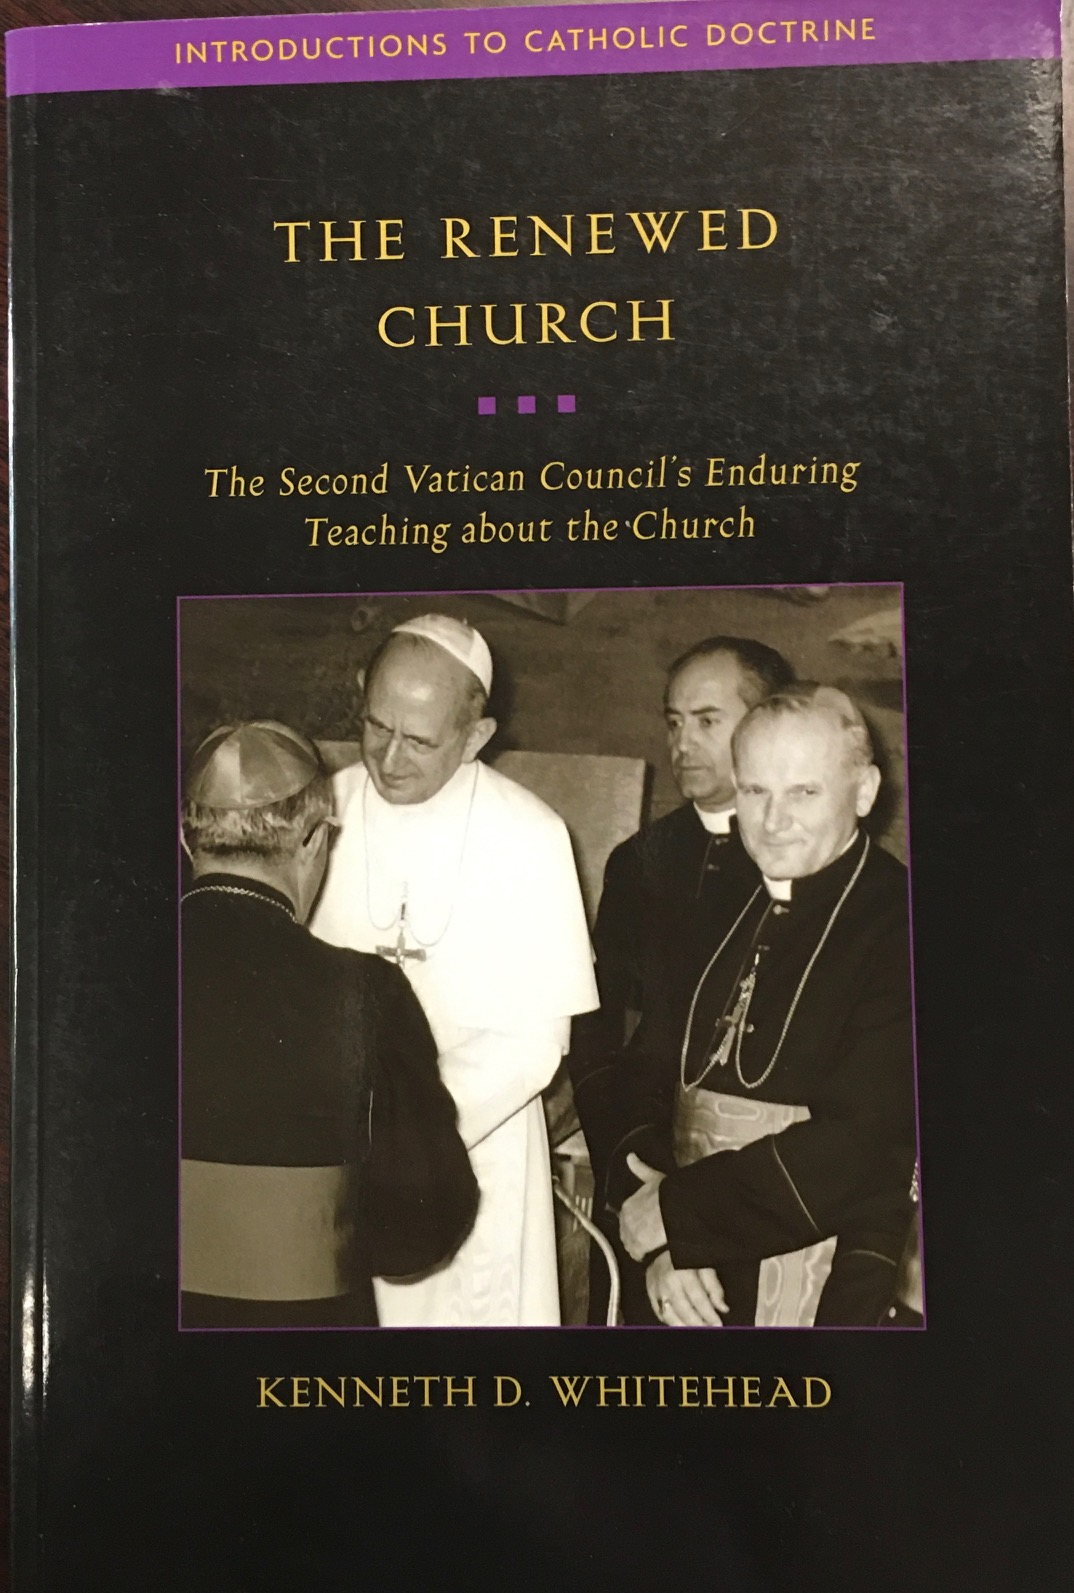 Image for The Renewed Church: The Second Vatican Council's Enduring Teaching about the Church (Introductions to Catholic Doctrine)